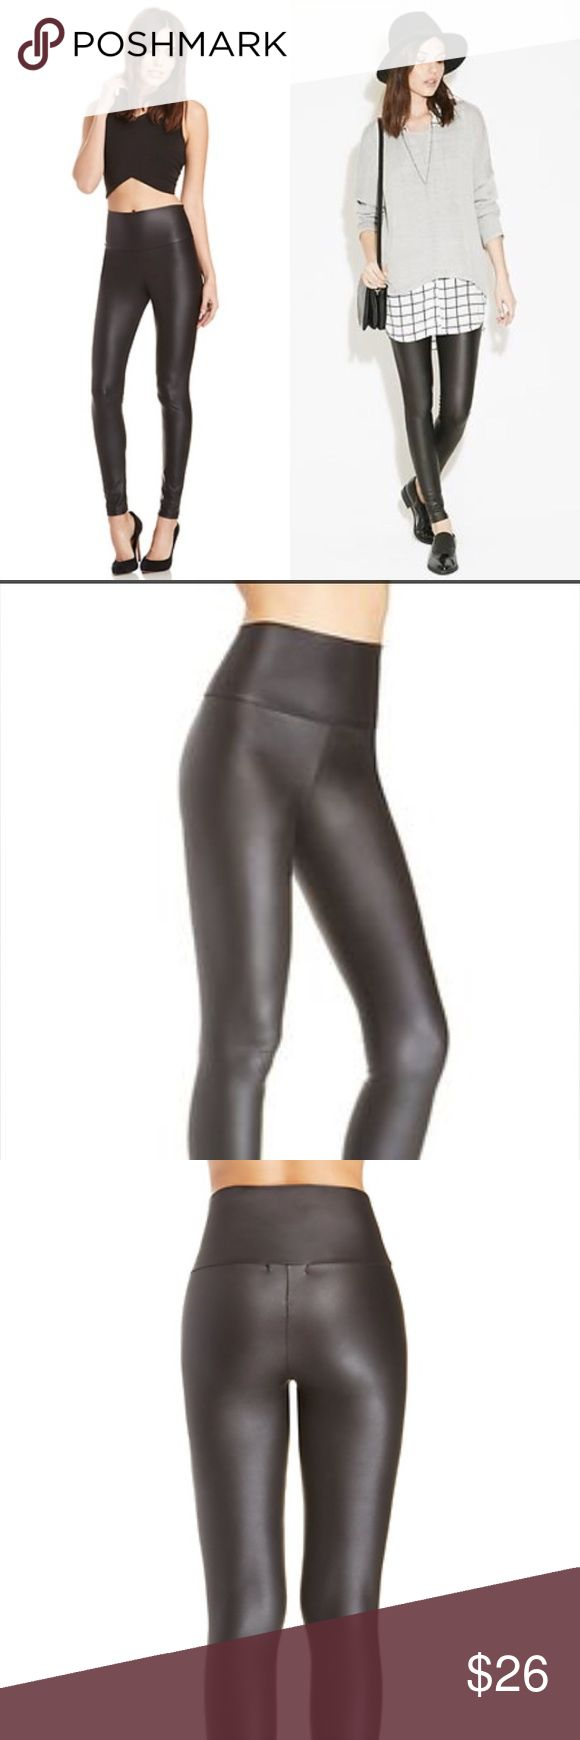 NWT Faux Leather Leggings Purchased from Daily Look, still on the site for $40! These never worn NWT faux leather leggings get really great reviews on the Daily Look site! Sadly they are too long for me and I missed the window to return. My loss is your gain! Size L. Daily Look Pants Leggings